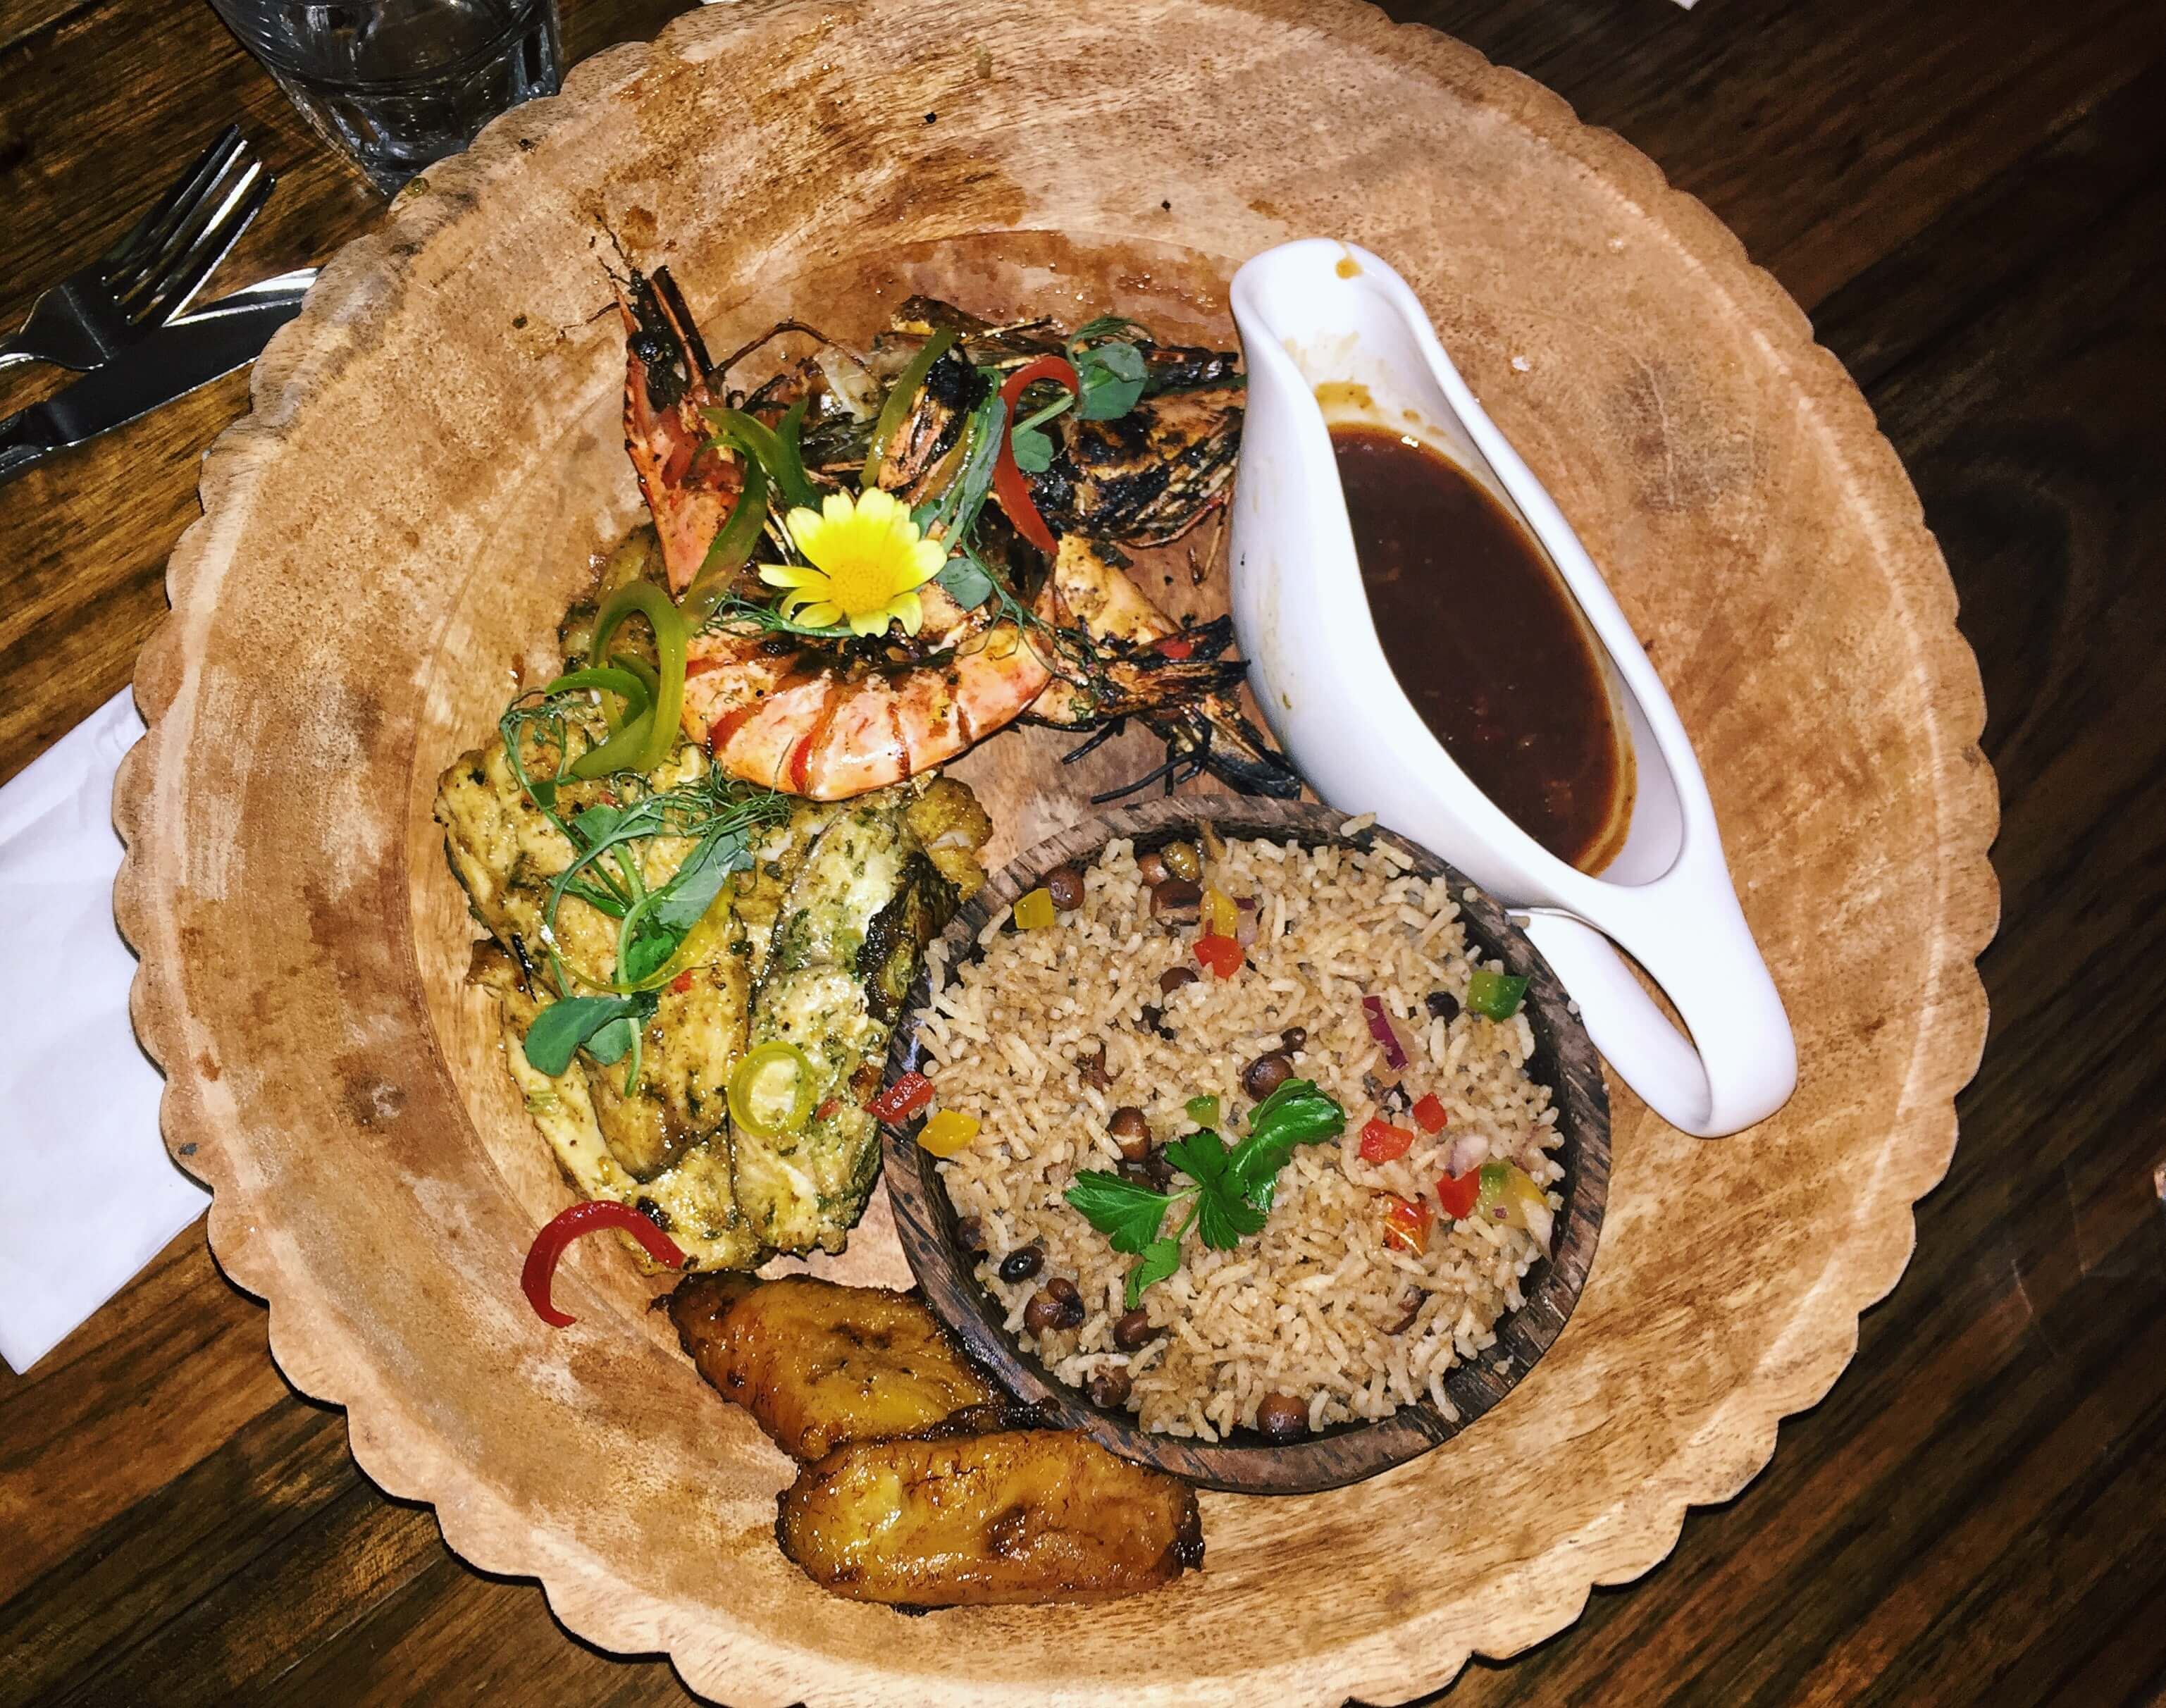 A seafood platter with rice and peas at Cottons Caribbean restaurant in Shoreditch, London